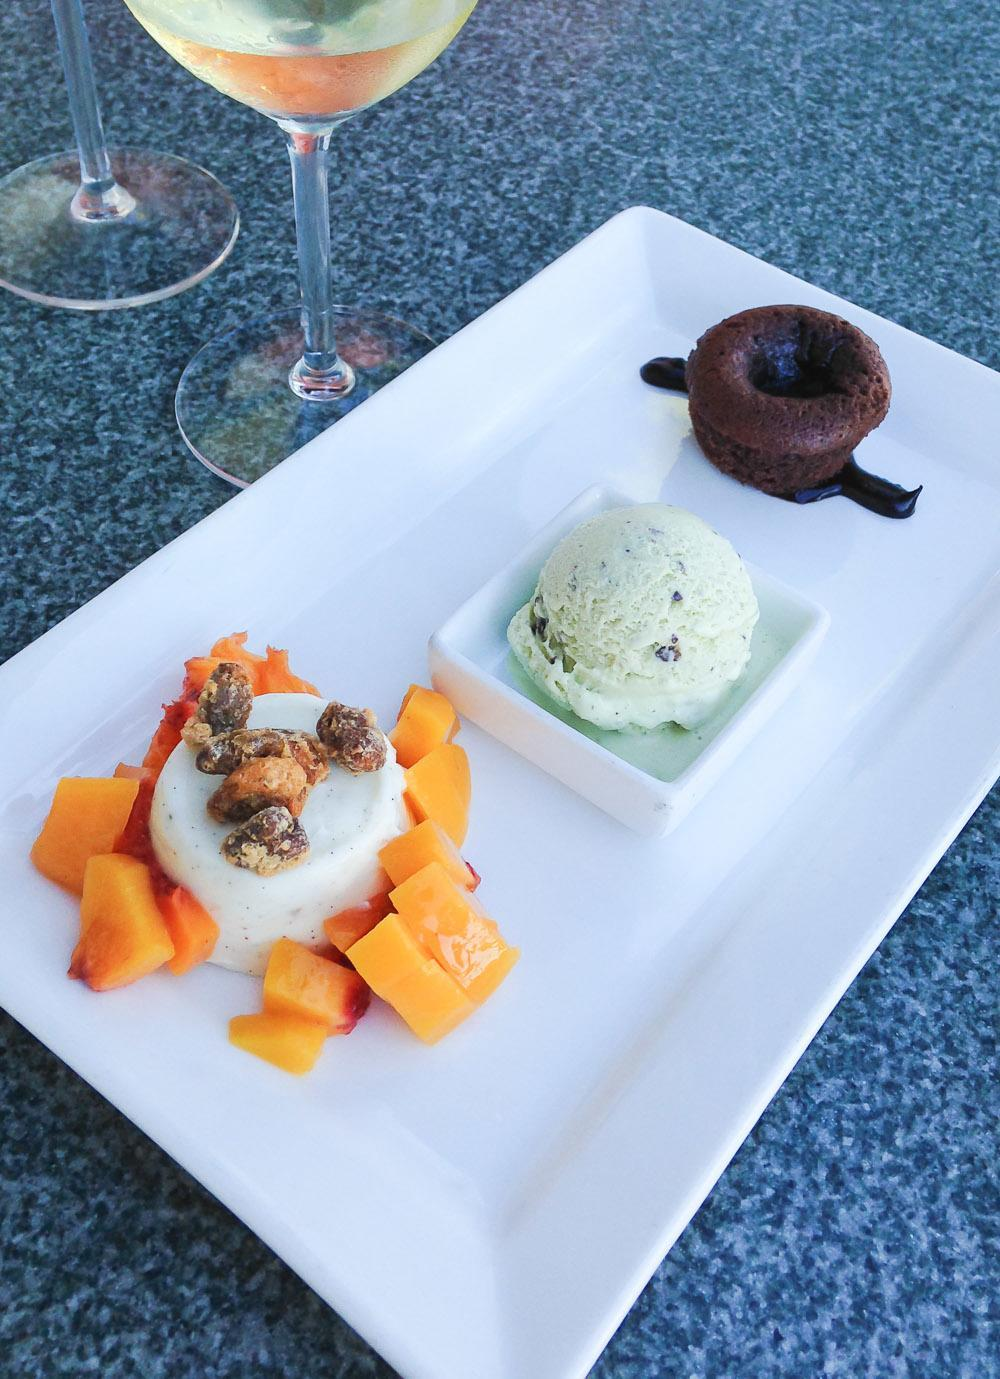 Trio of desserts at The Fishery Restaurant in Pacific Beach